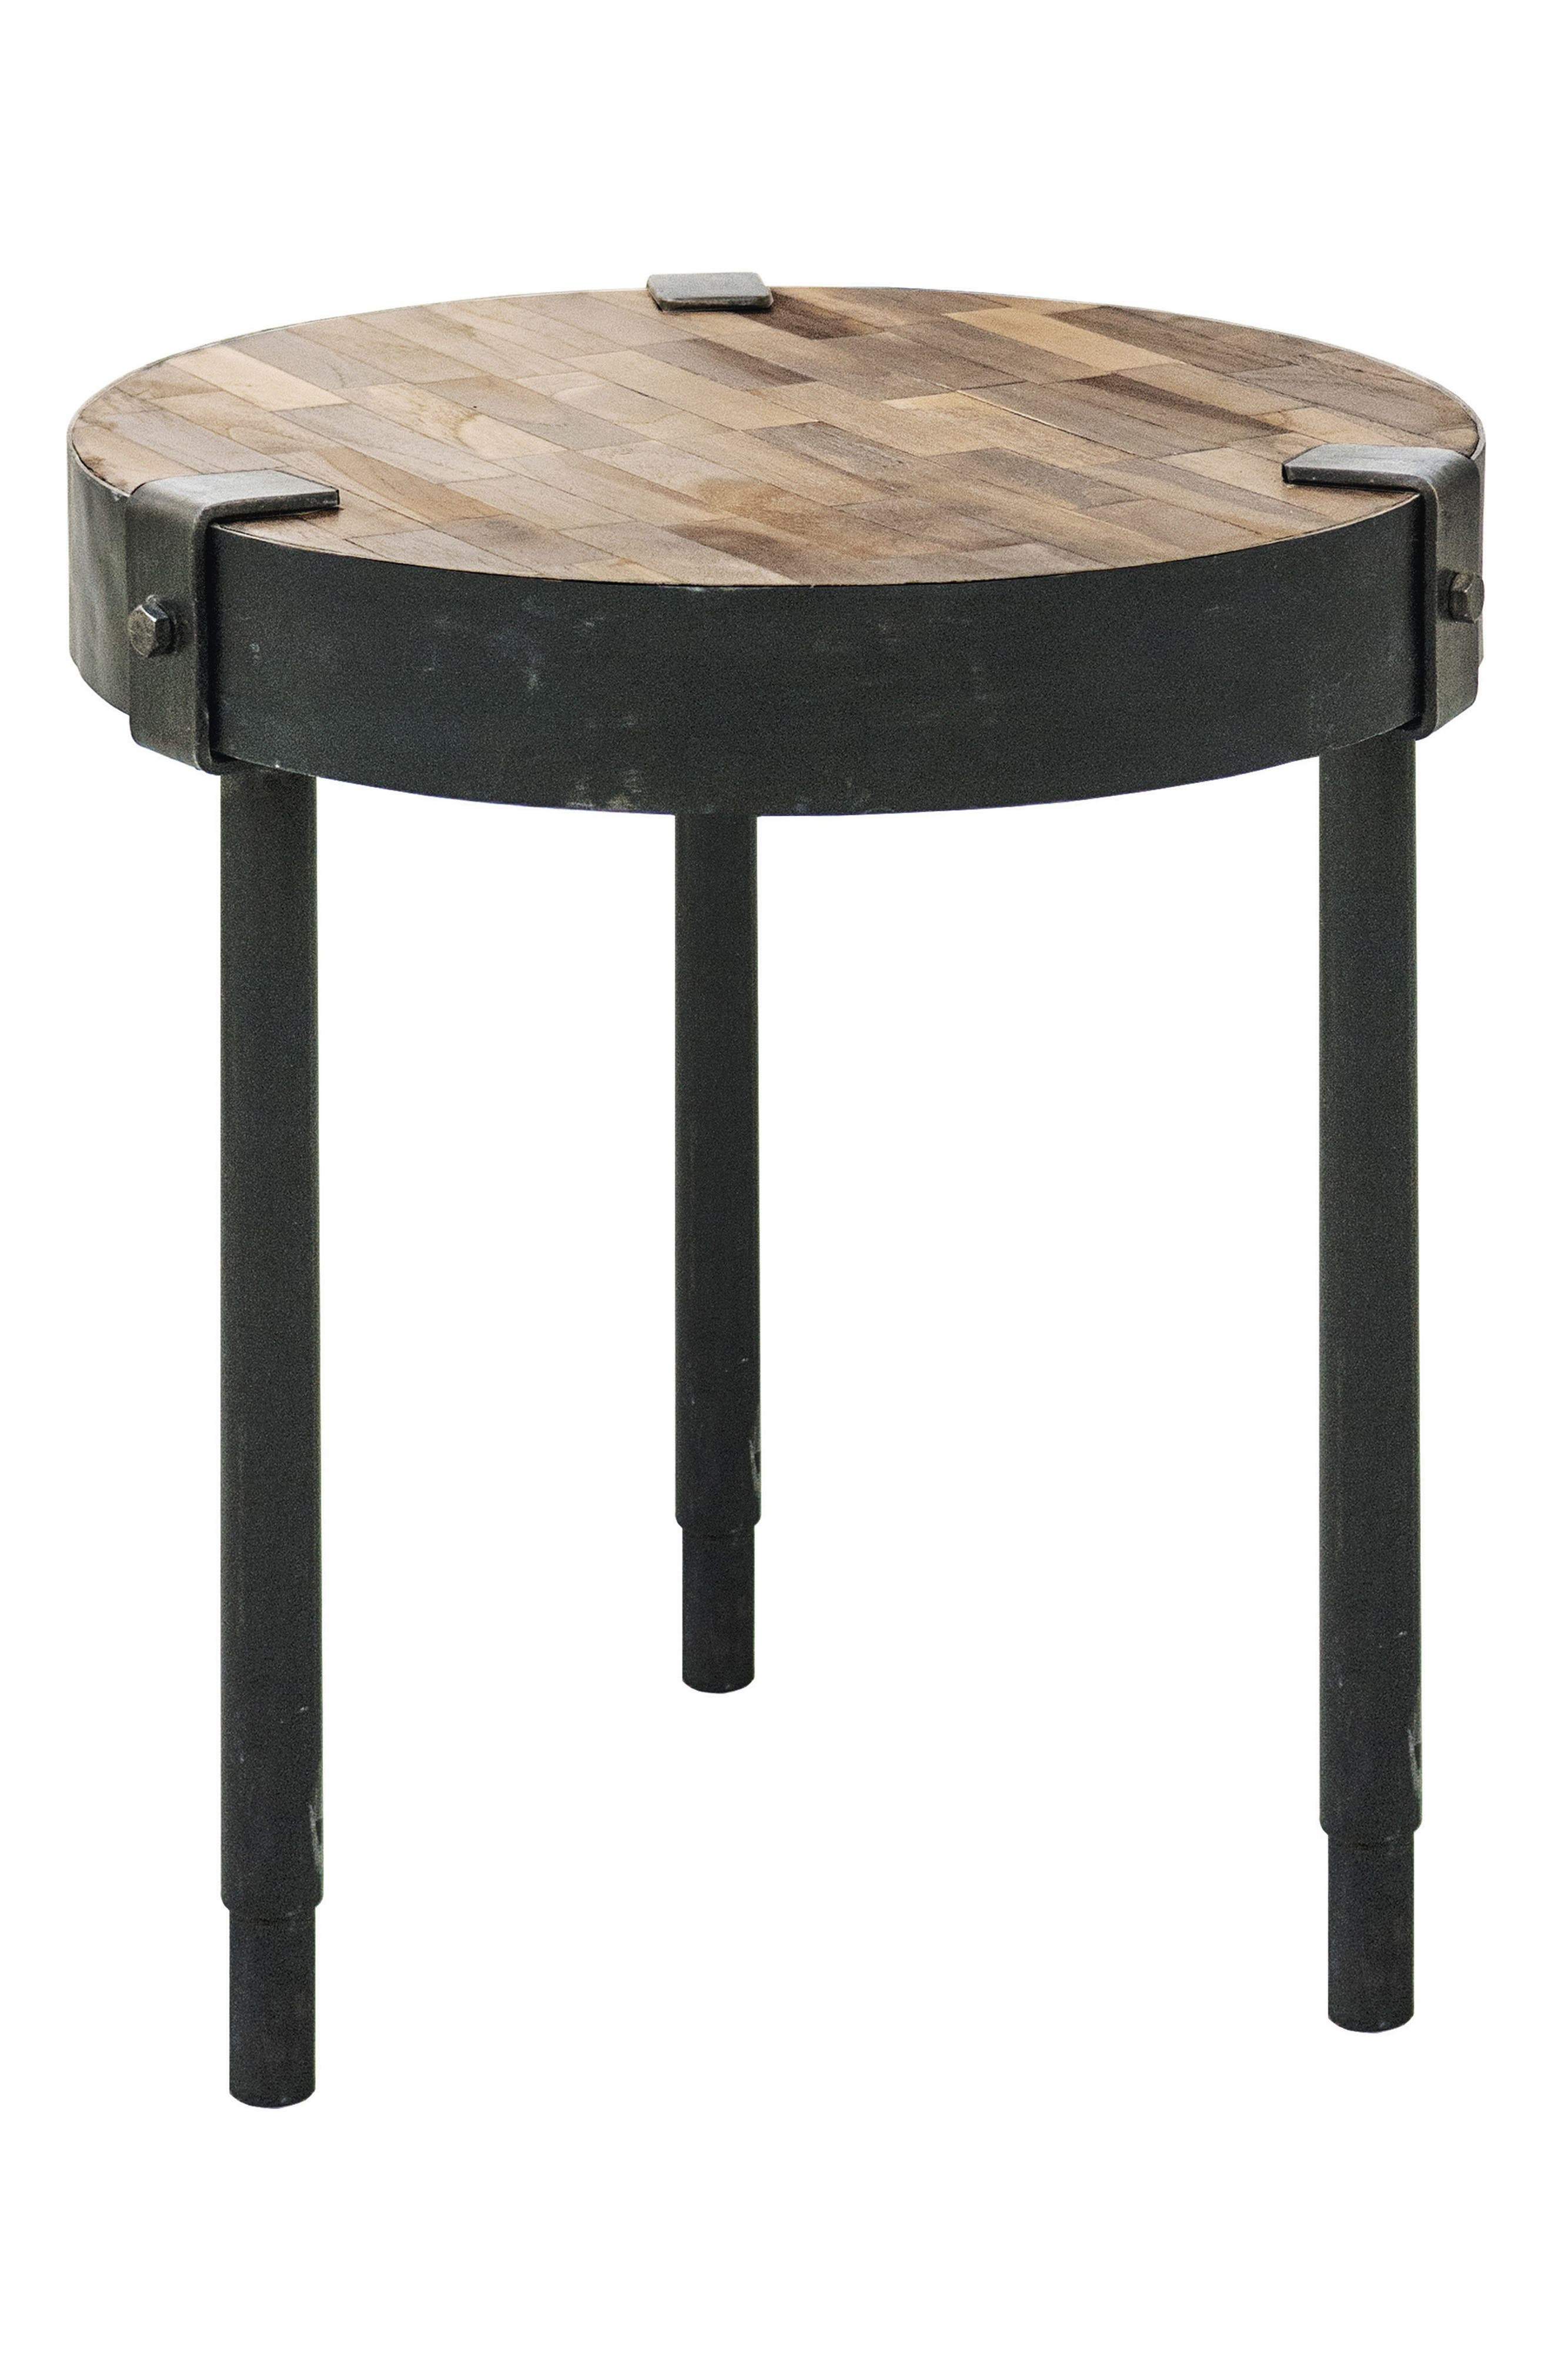 Seebach Metal & Wood Accent Table,                             Main thumbnail 1, color,                             200